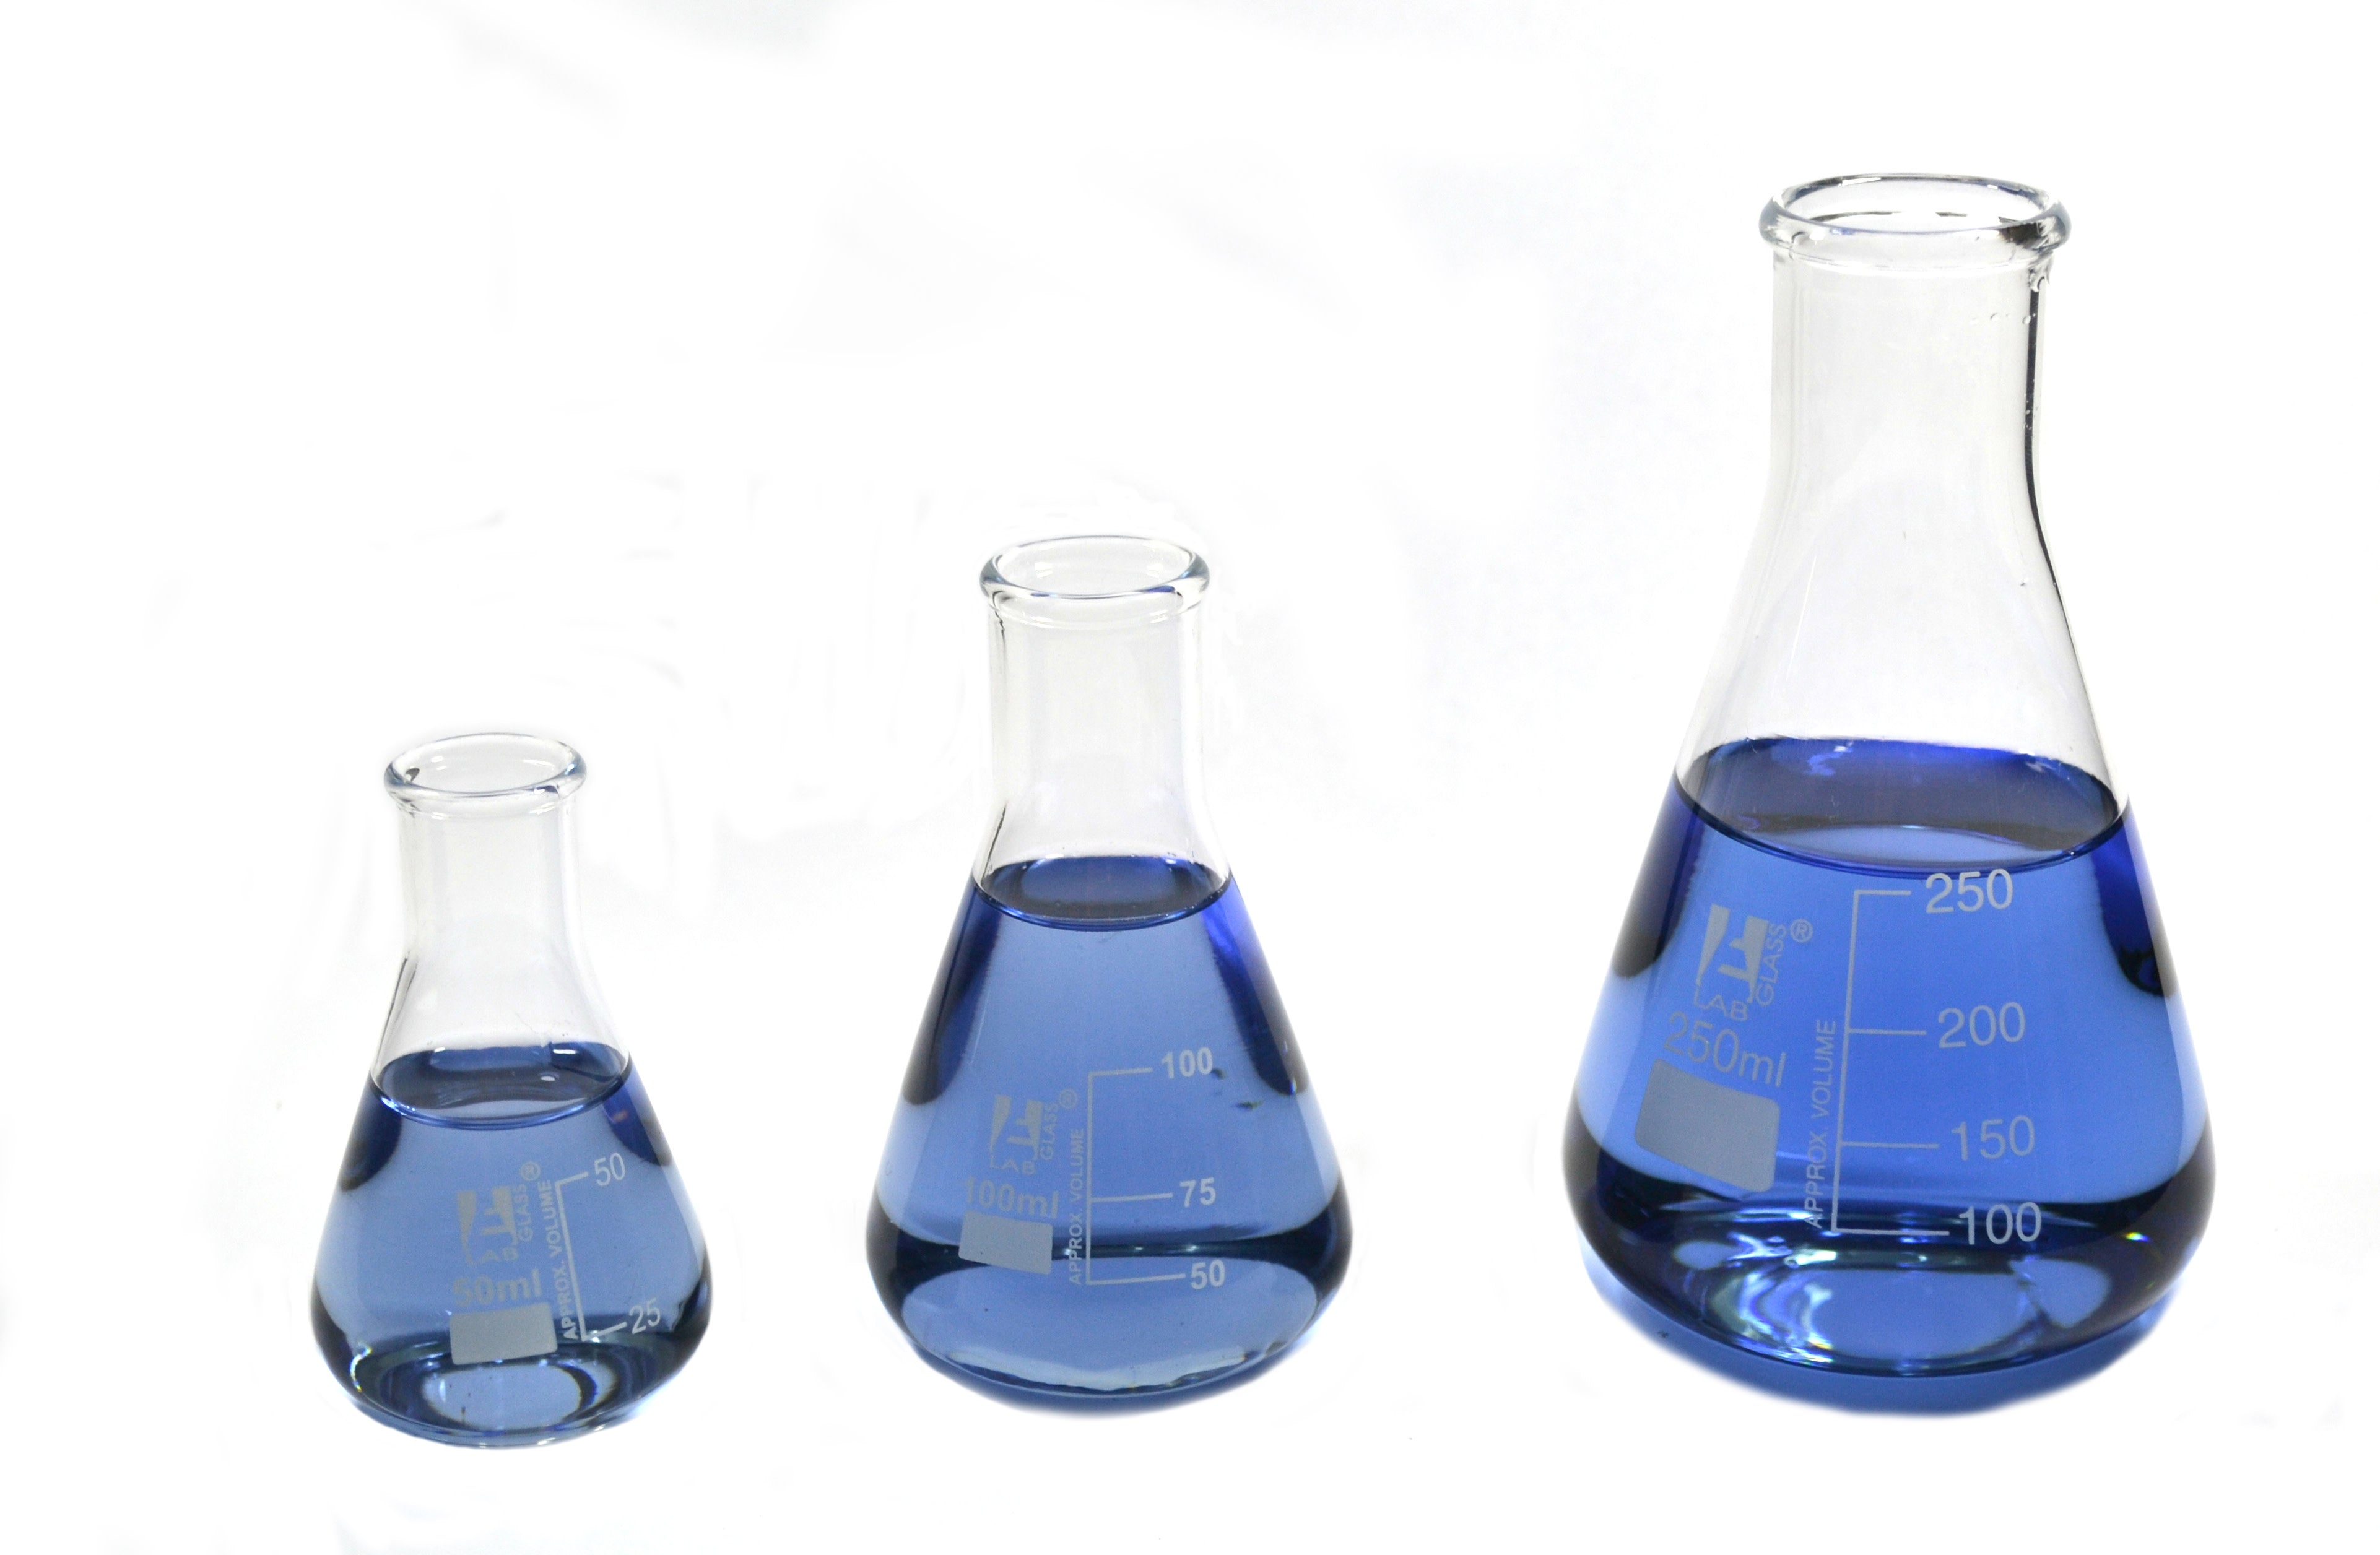 Borosilicate Glass Erlenmeyer Flask Set, (50 ml, 100 ml, 250 ml), Graduated, Autoclavable